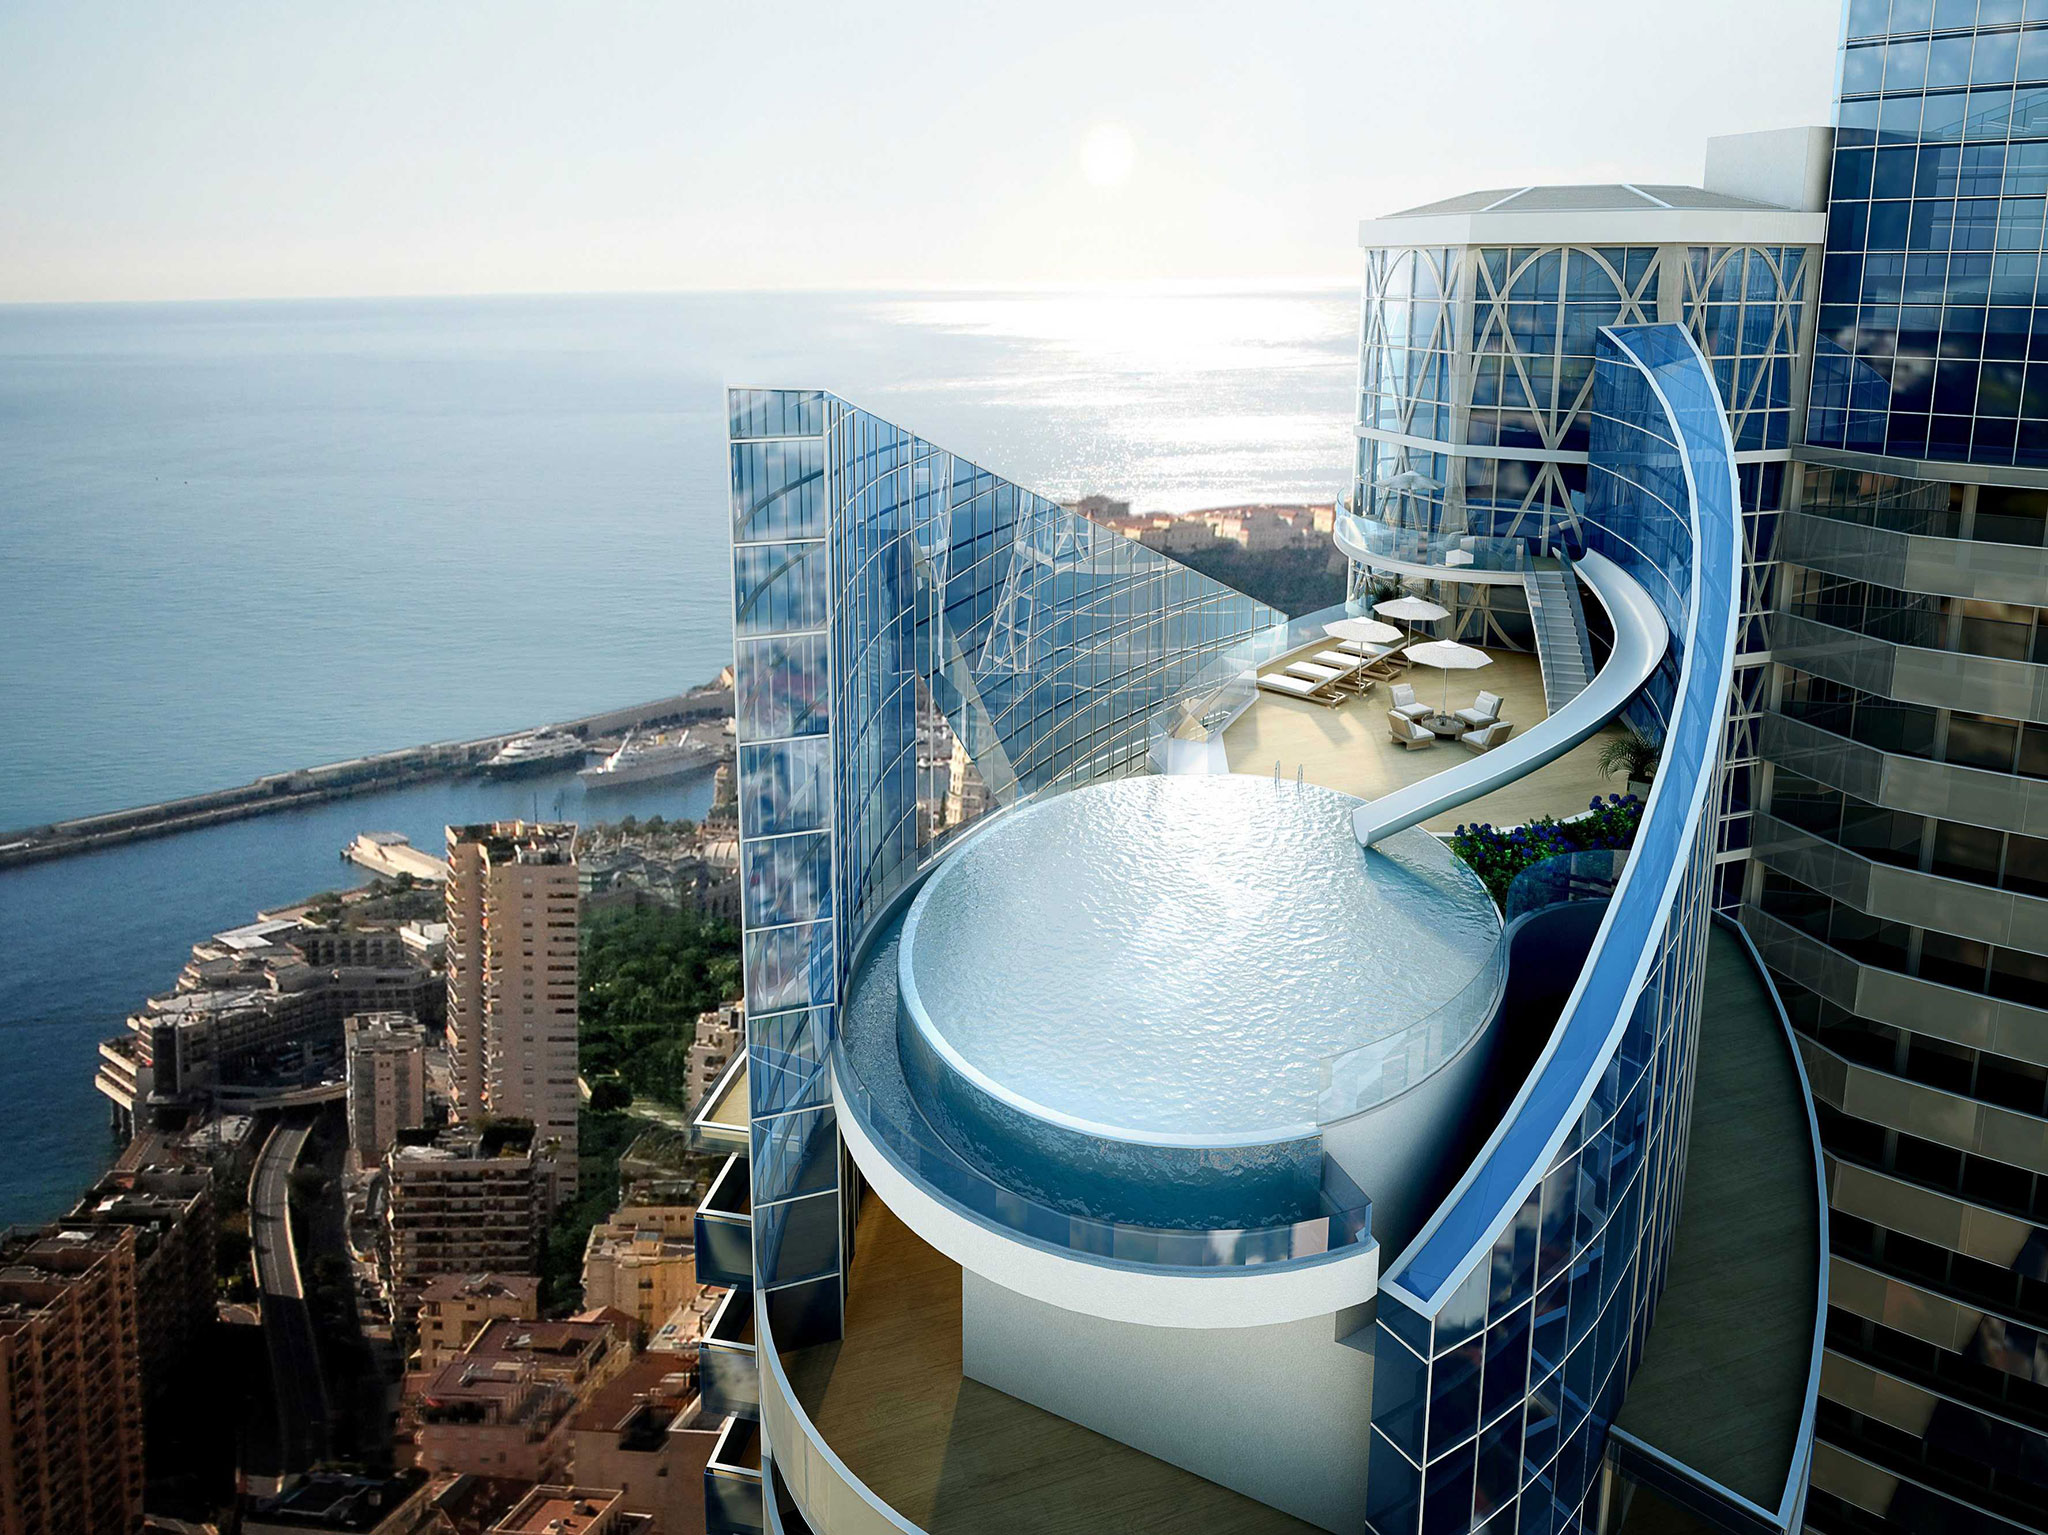 Luxury Sky Penthouse: Vida exclusiva en Mónaco